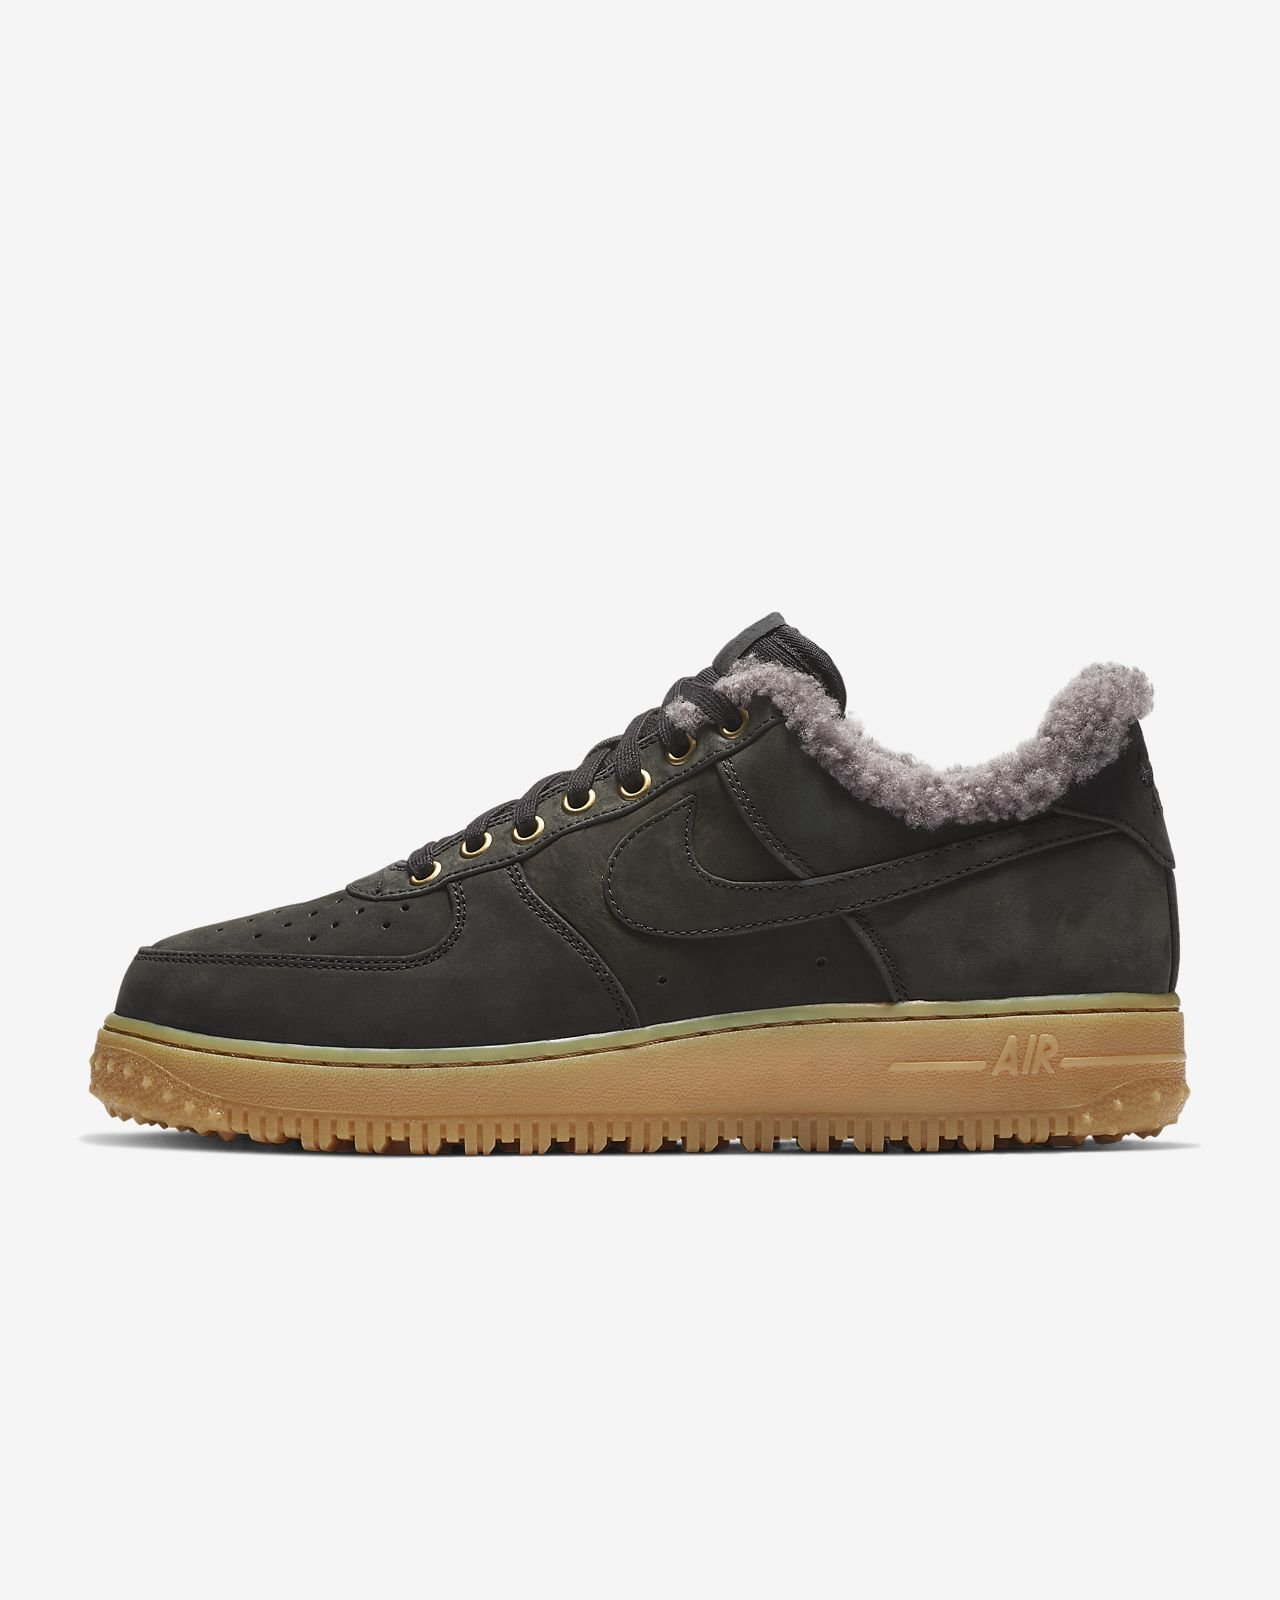 new arrivals a9676 5984a ... Nike Air Force 1 Premium Winter - sko til mænd